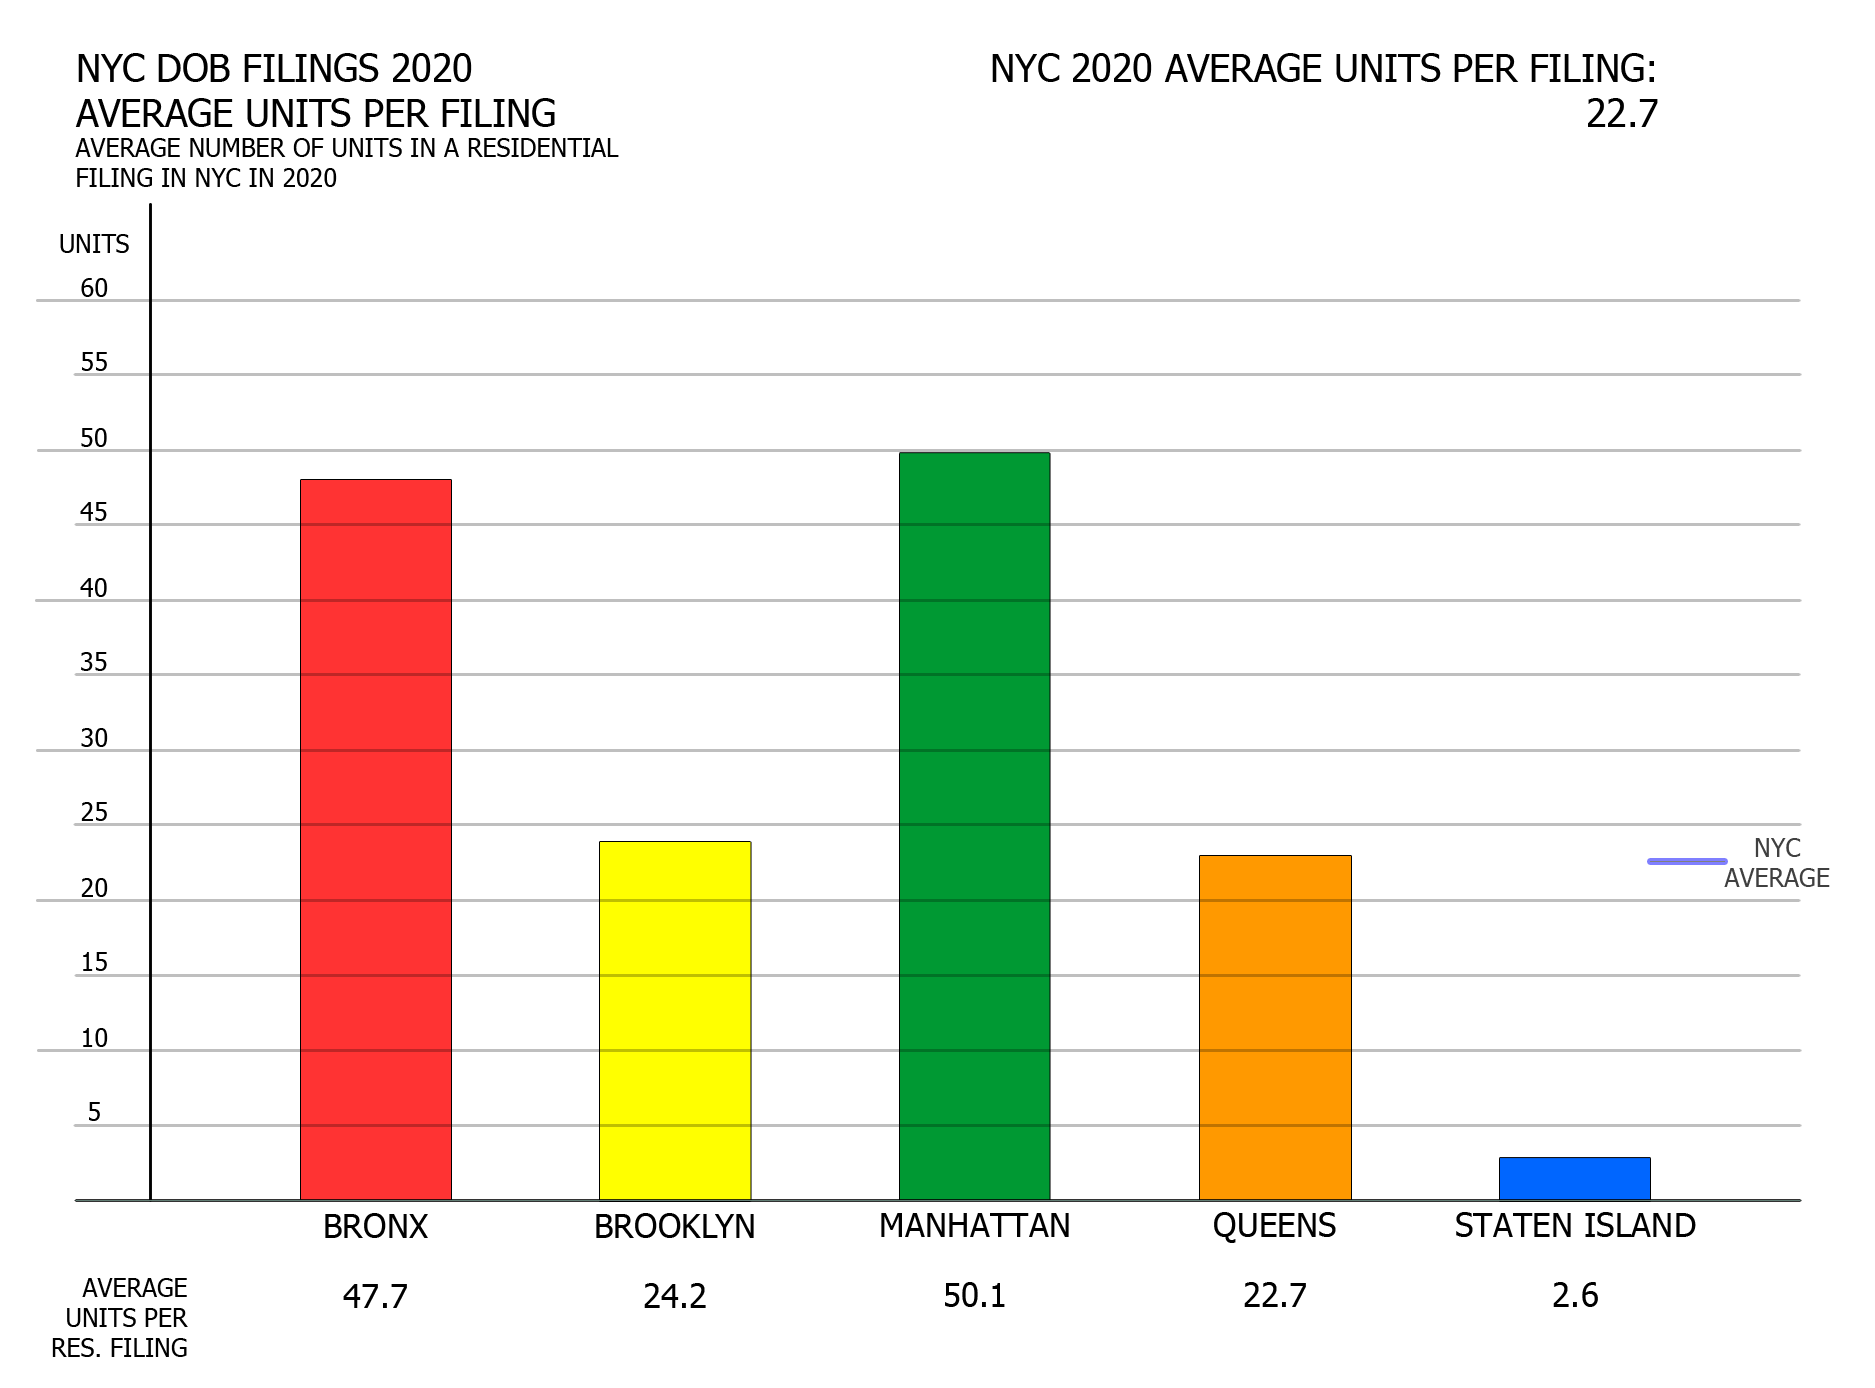 NYC DOB filings in 2020 by average units per filing. Credit: Vitali Ogorodnikov